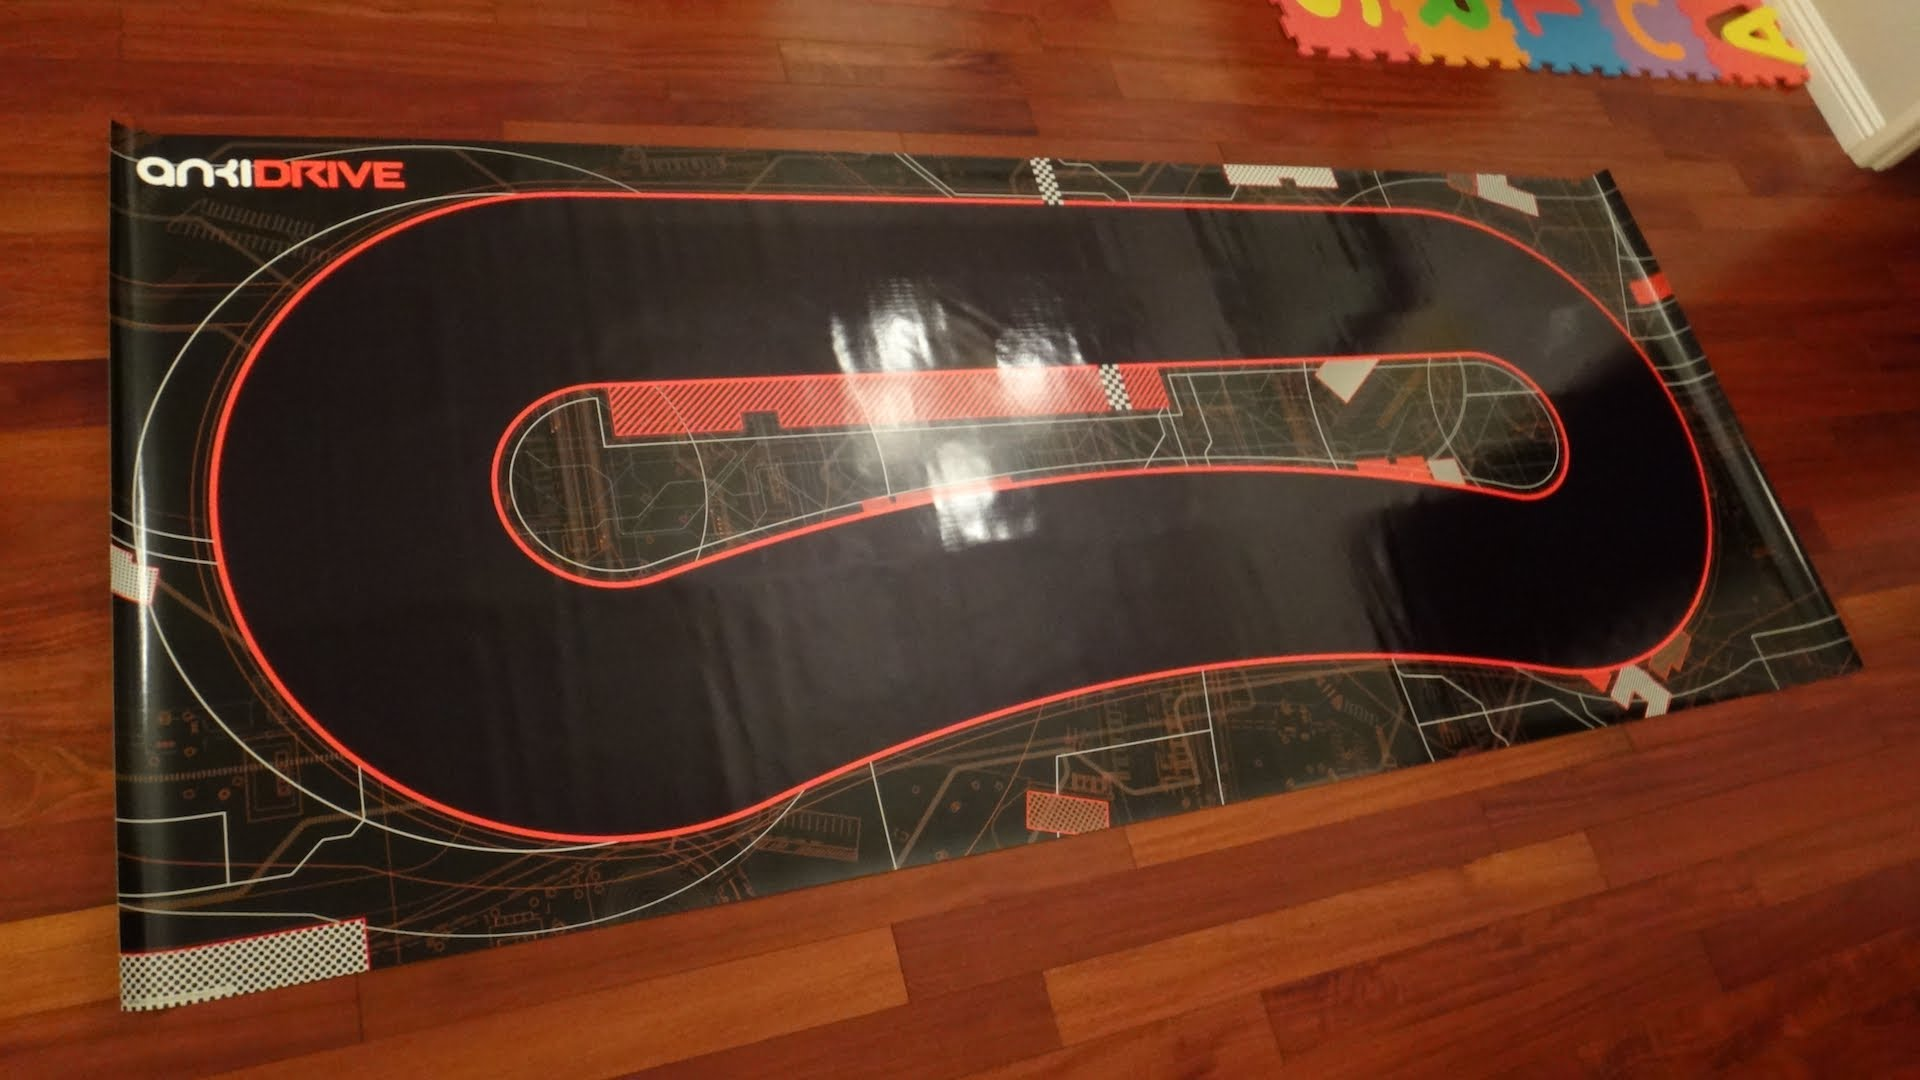 Anki Race Car Review